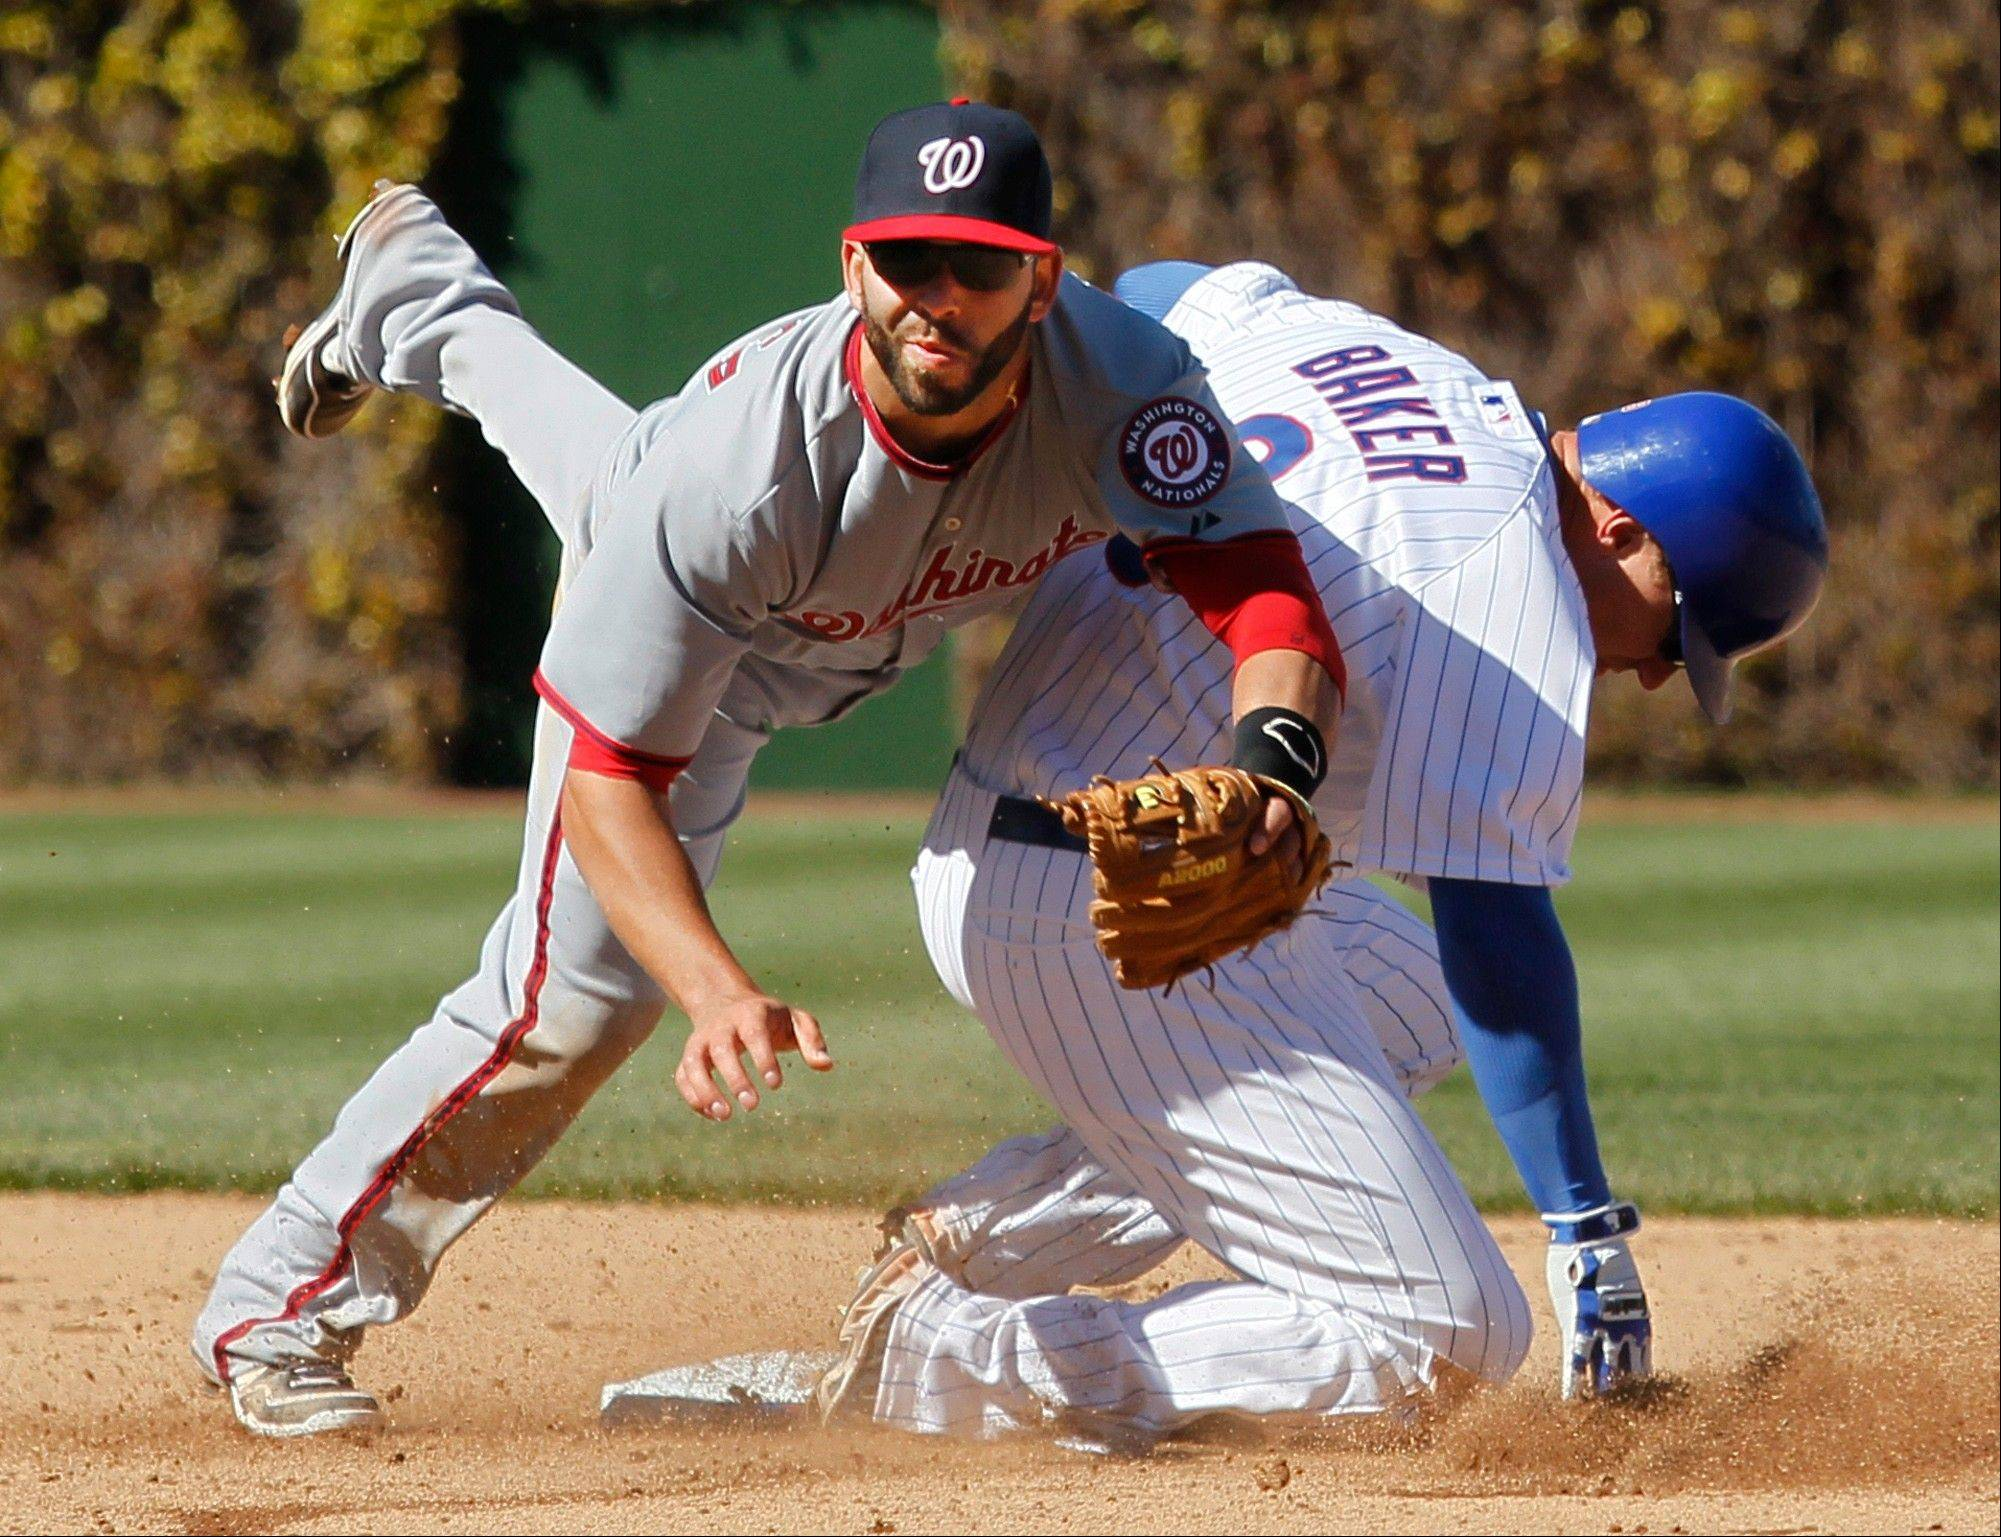 Washington Nationals second baseman Danny Espinosa, left, turns the double play forcing out Chicago Cubs' Jeff Baker at second and getting Marlon Byrd out at first during the seventh inning of an opening day baseball game, Thursday, April 5, 2012, in Chicago.